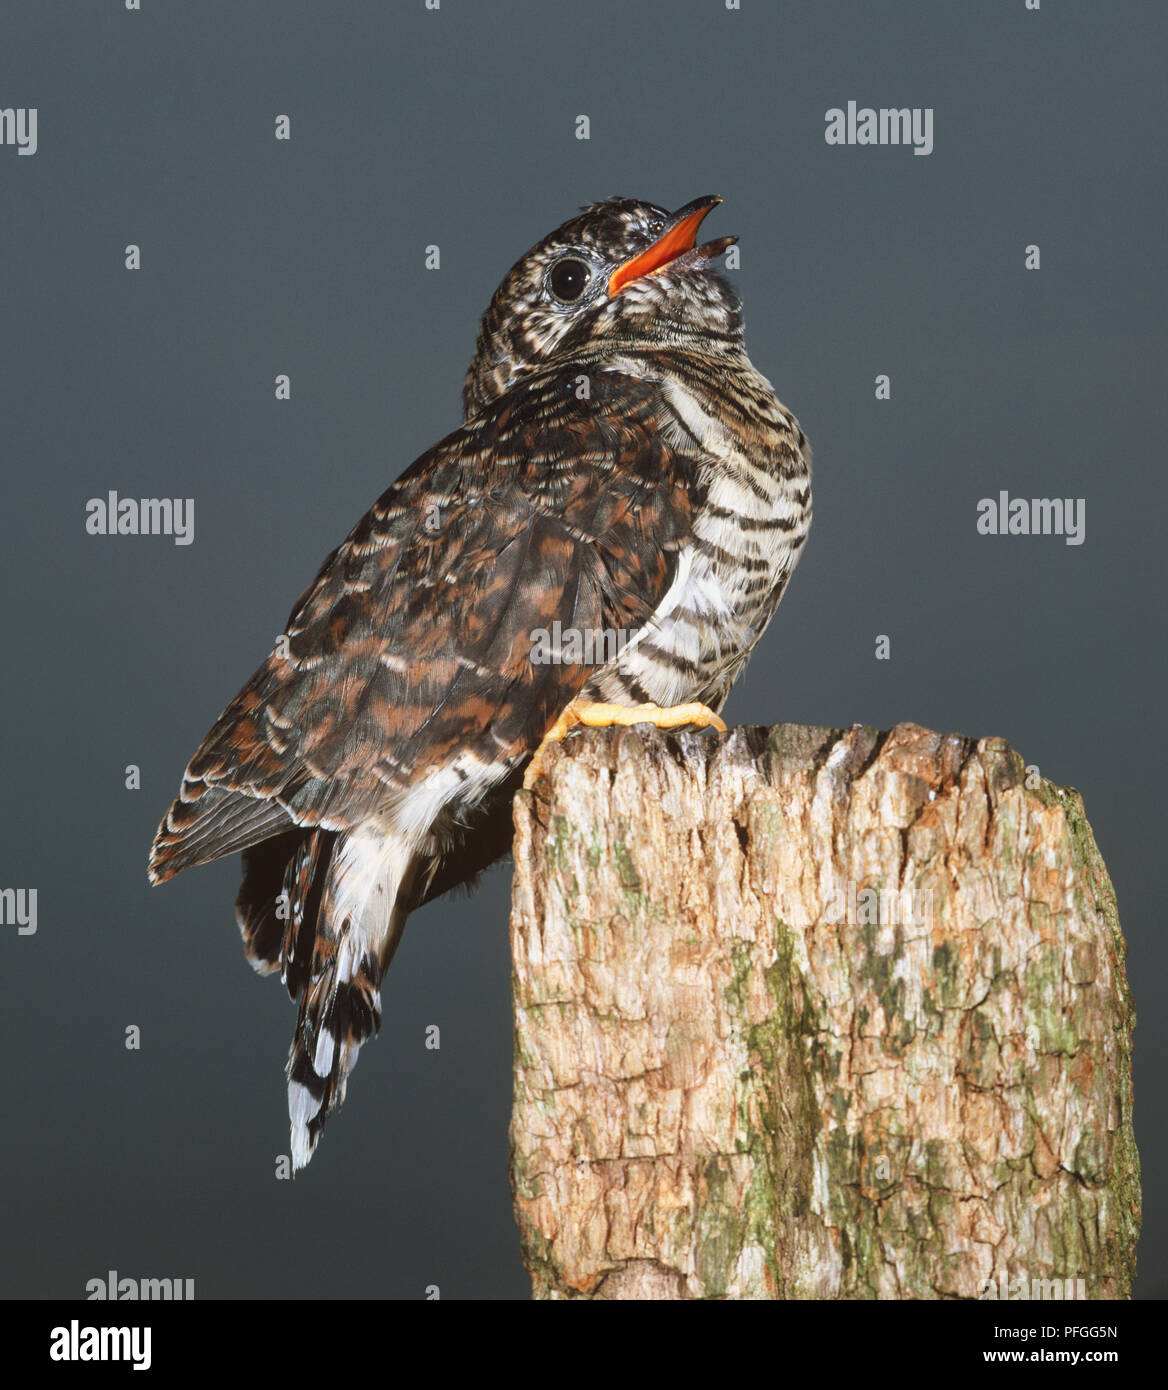 Common Cuckoo (Cuculus canorus) with its beak slightly open, perching on edge of a piece of wood, side view - Stock Image